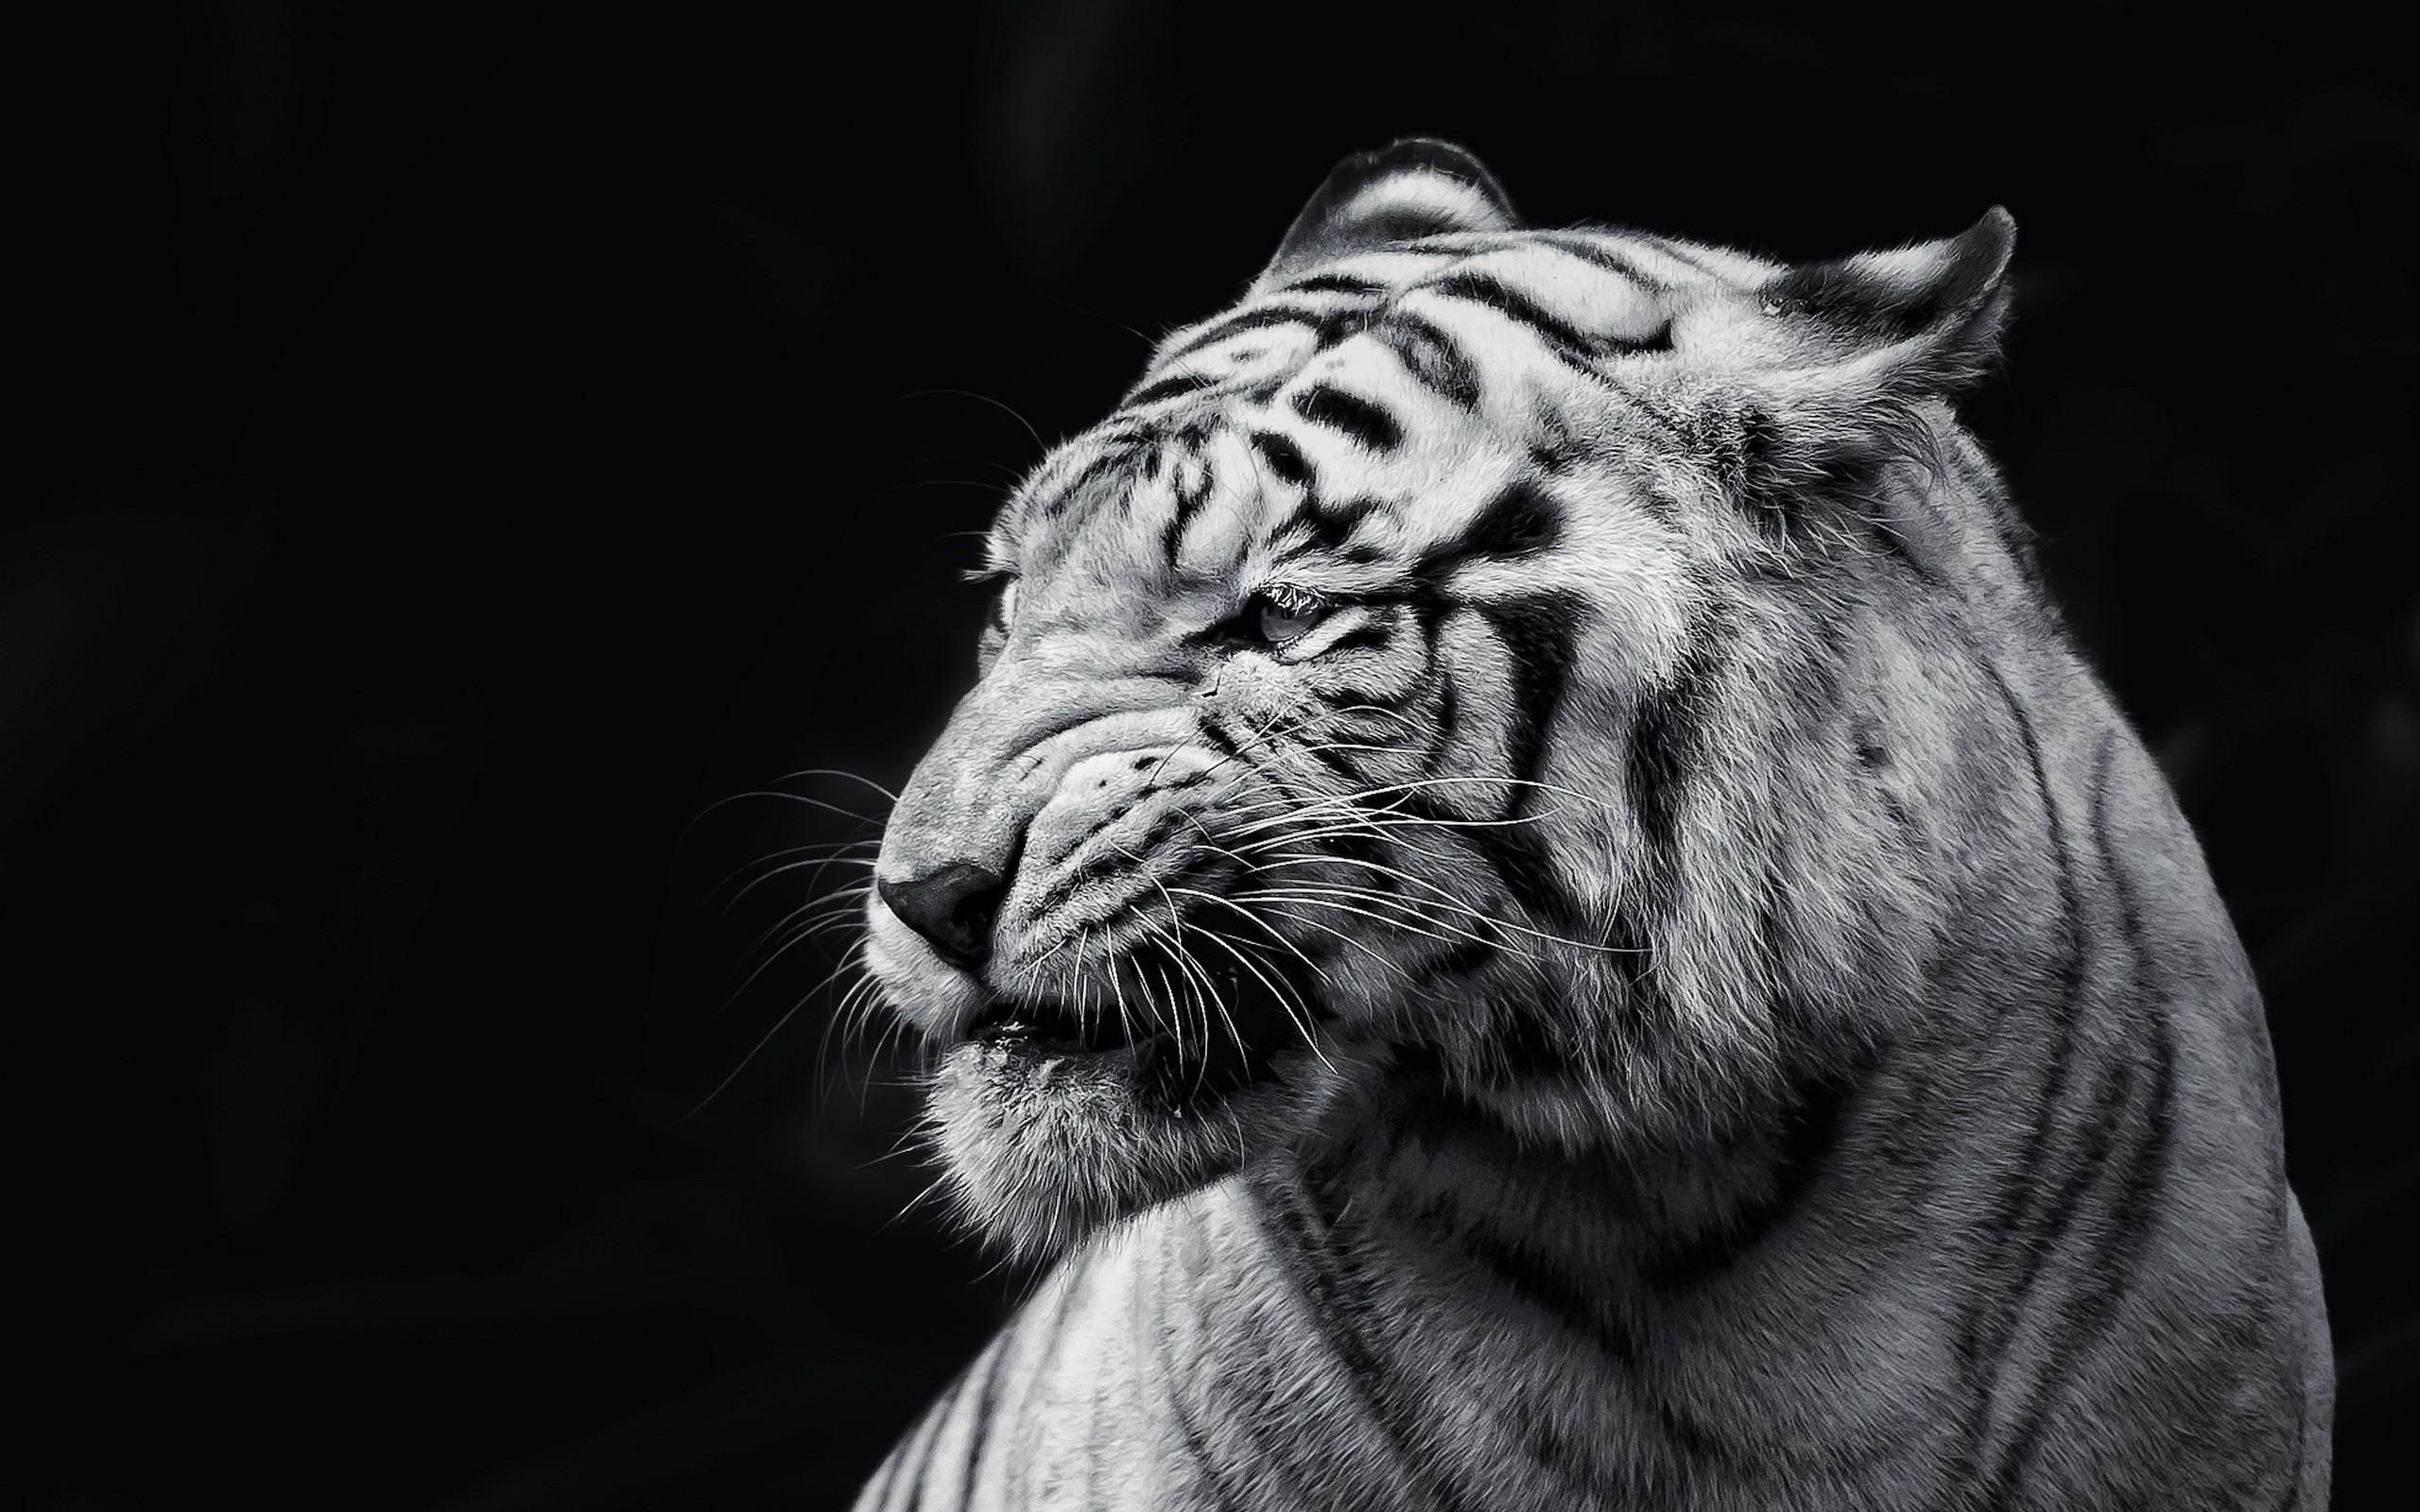 Lion Black And White Wallpapers 1080p On Wallpaper 1080p Hd Tiger Wallpaper Animals White Tiger